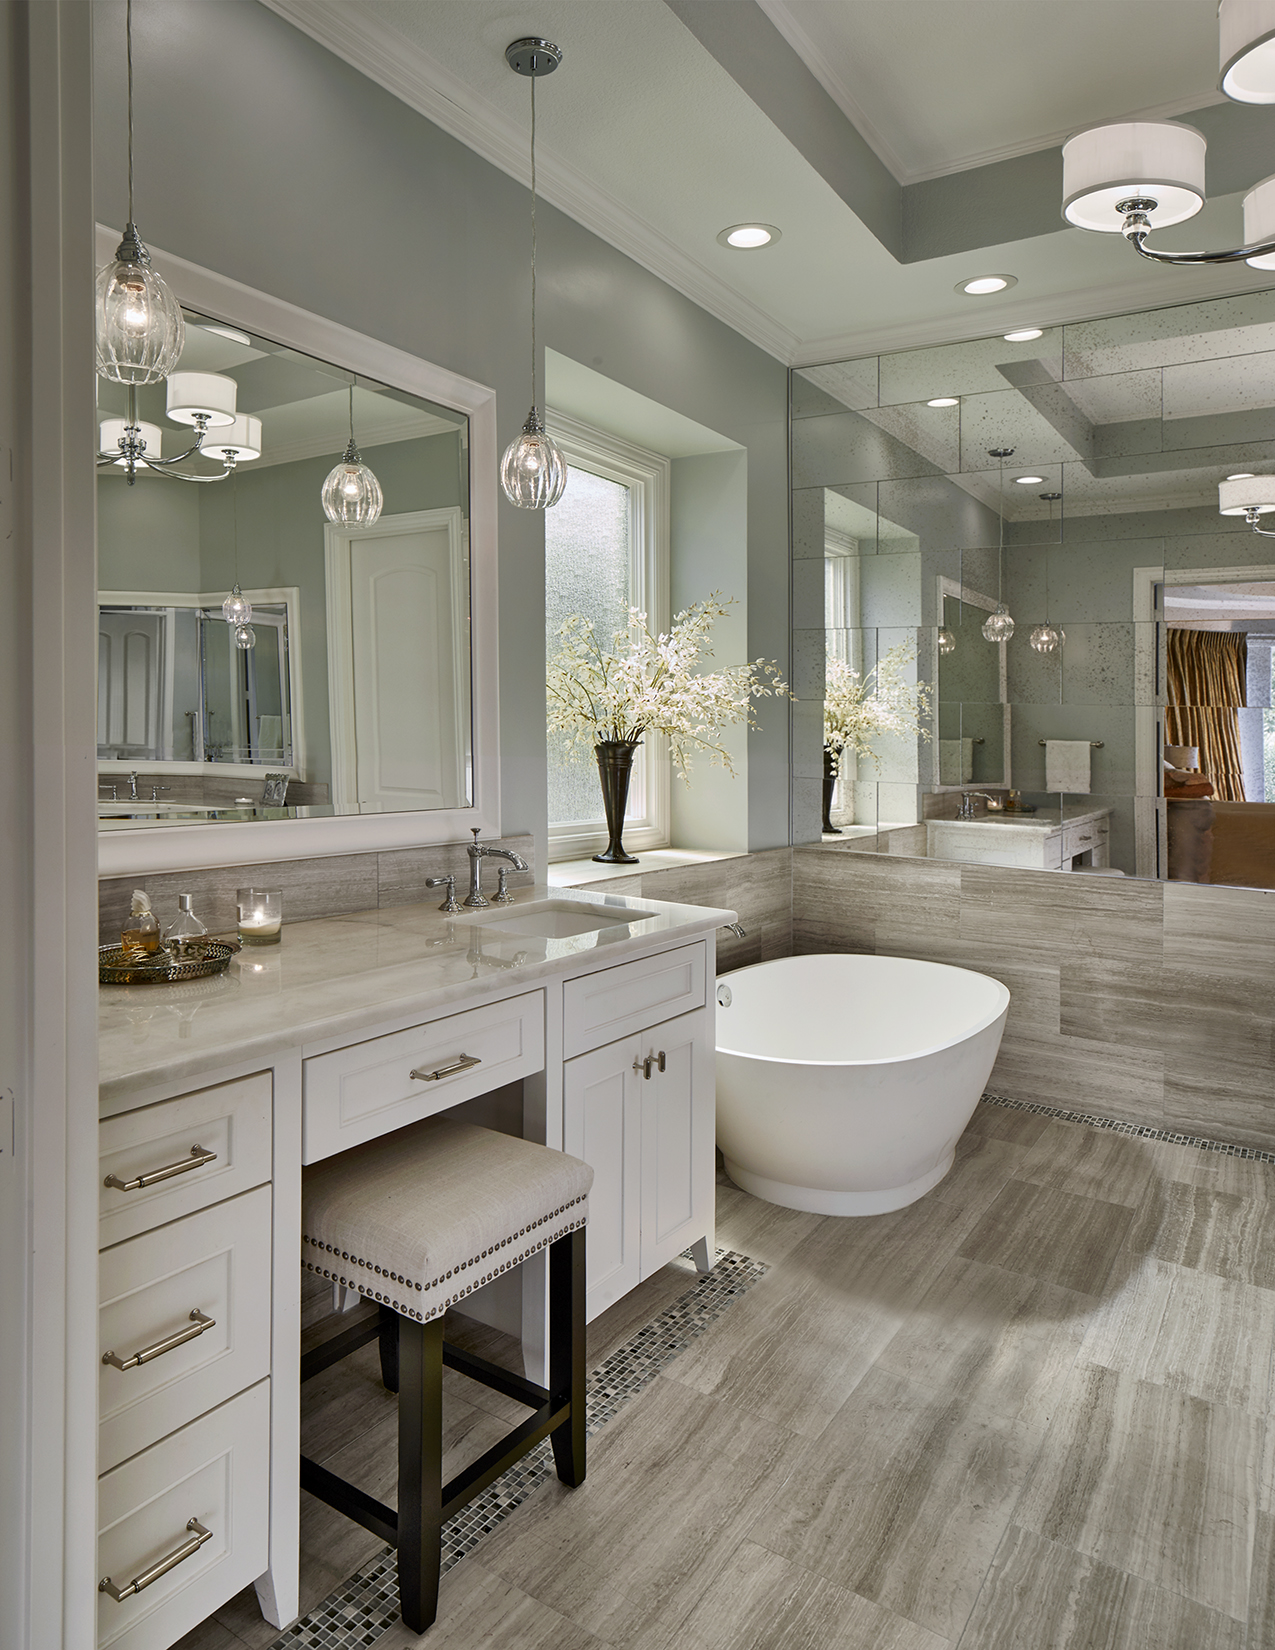 90+ Best Bathroom Design and Remodeling Ideas